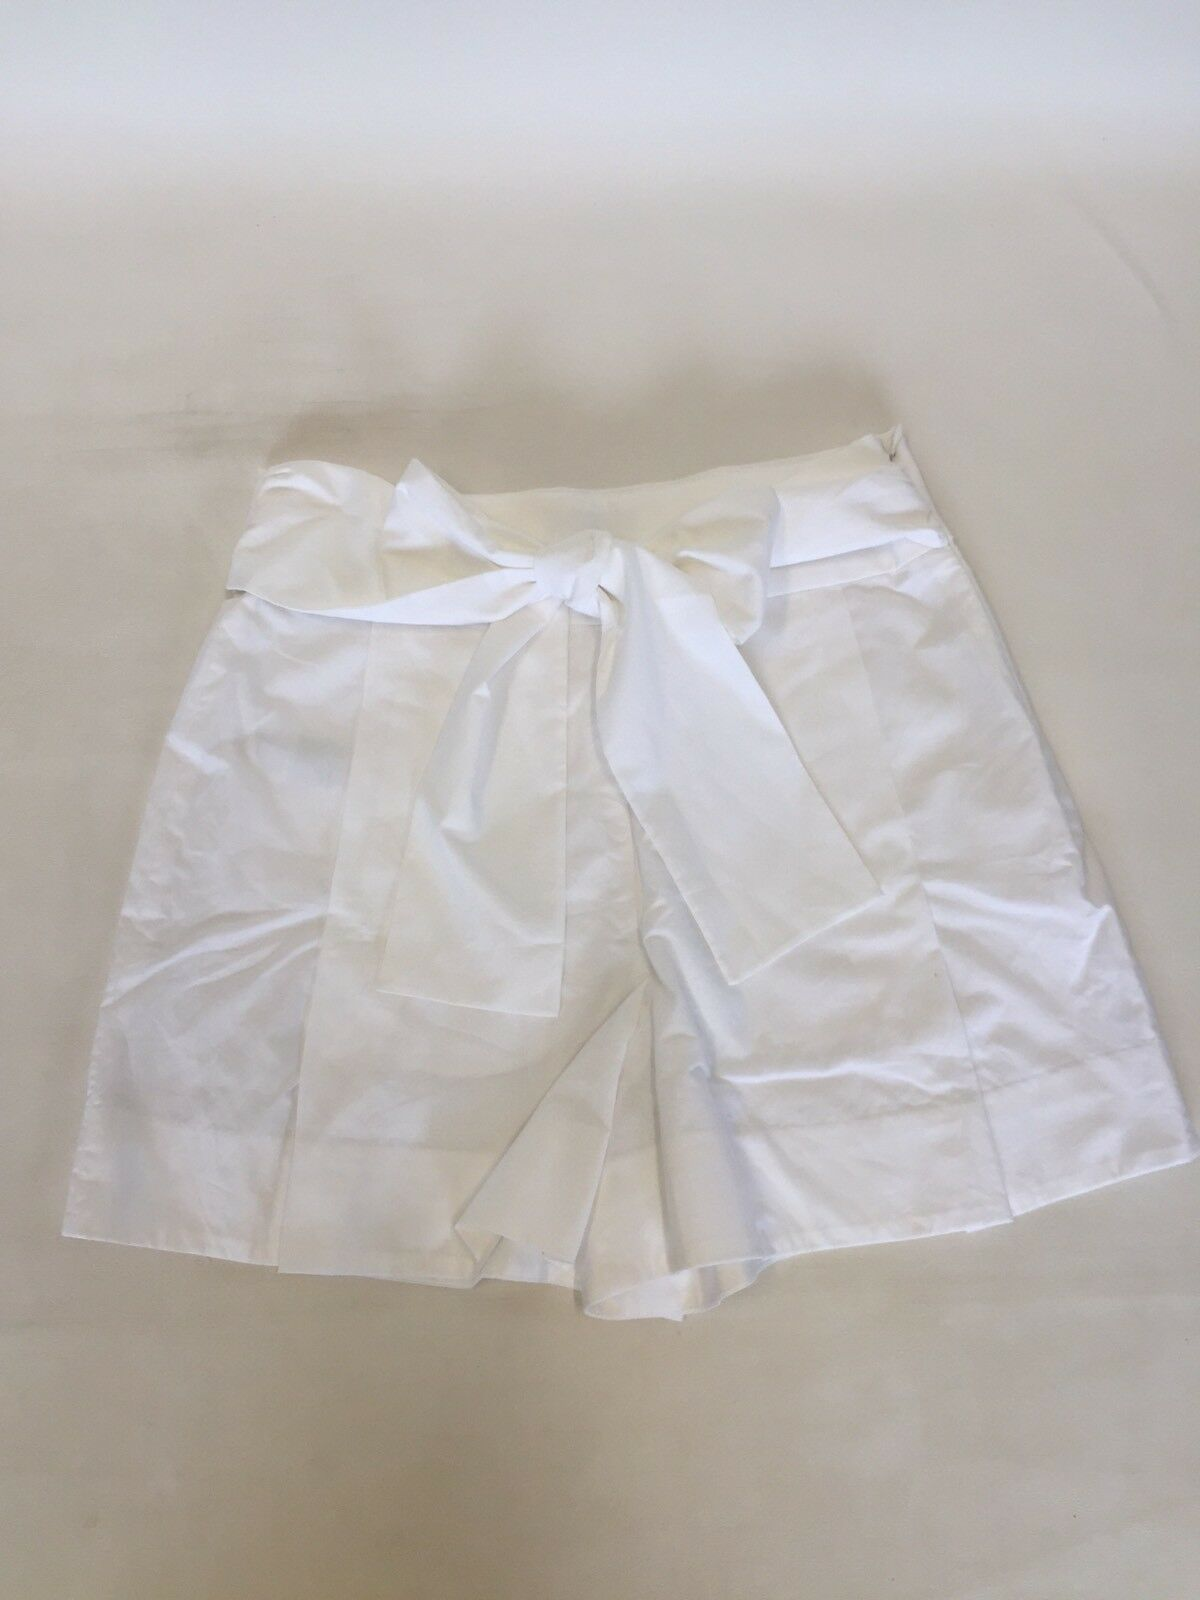 New JCREW Tie-waist short in cotton poplin White Sz 4 G4893  69